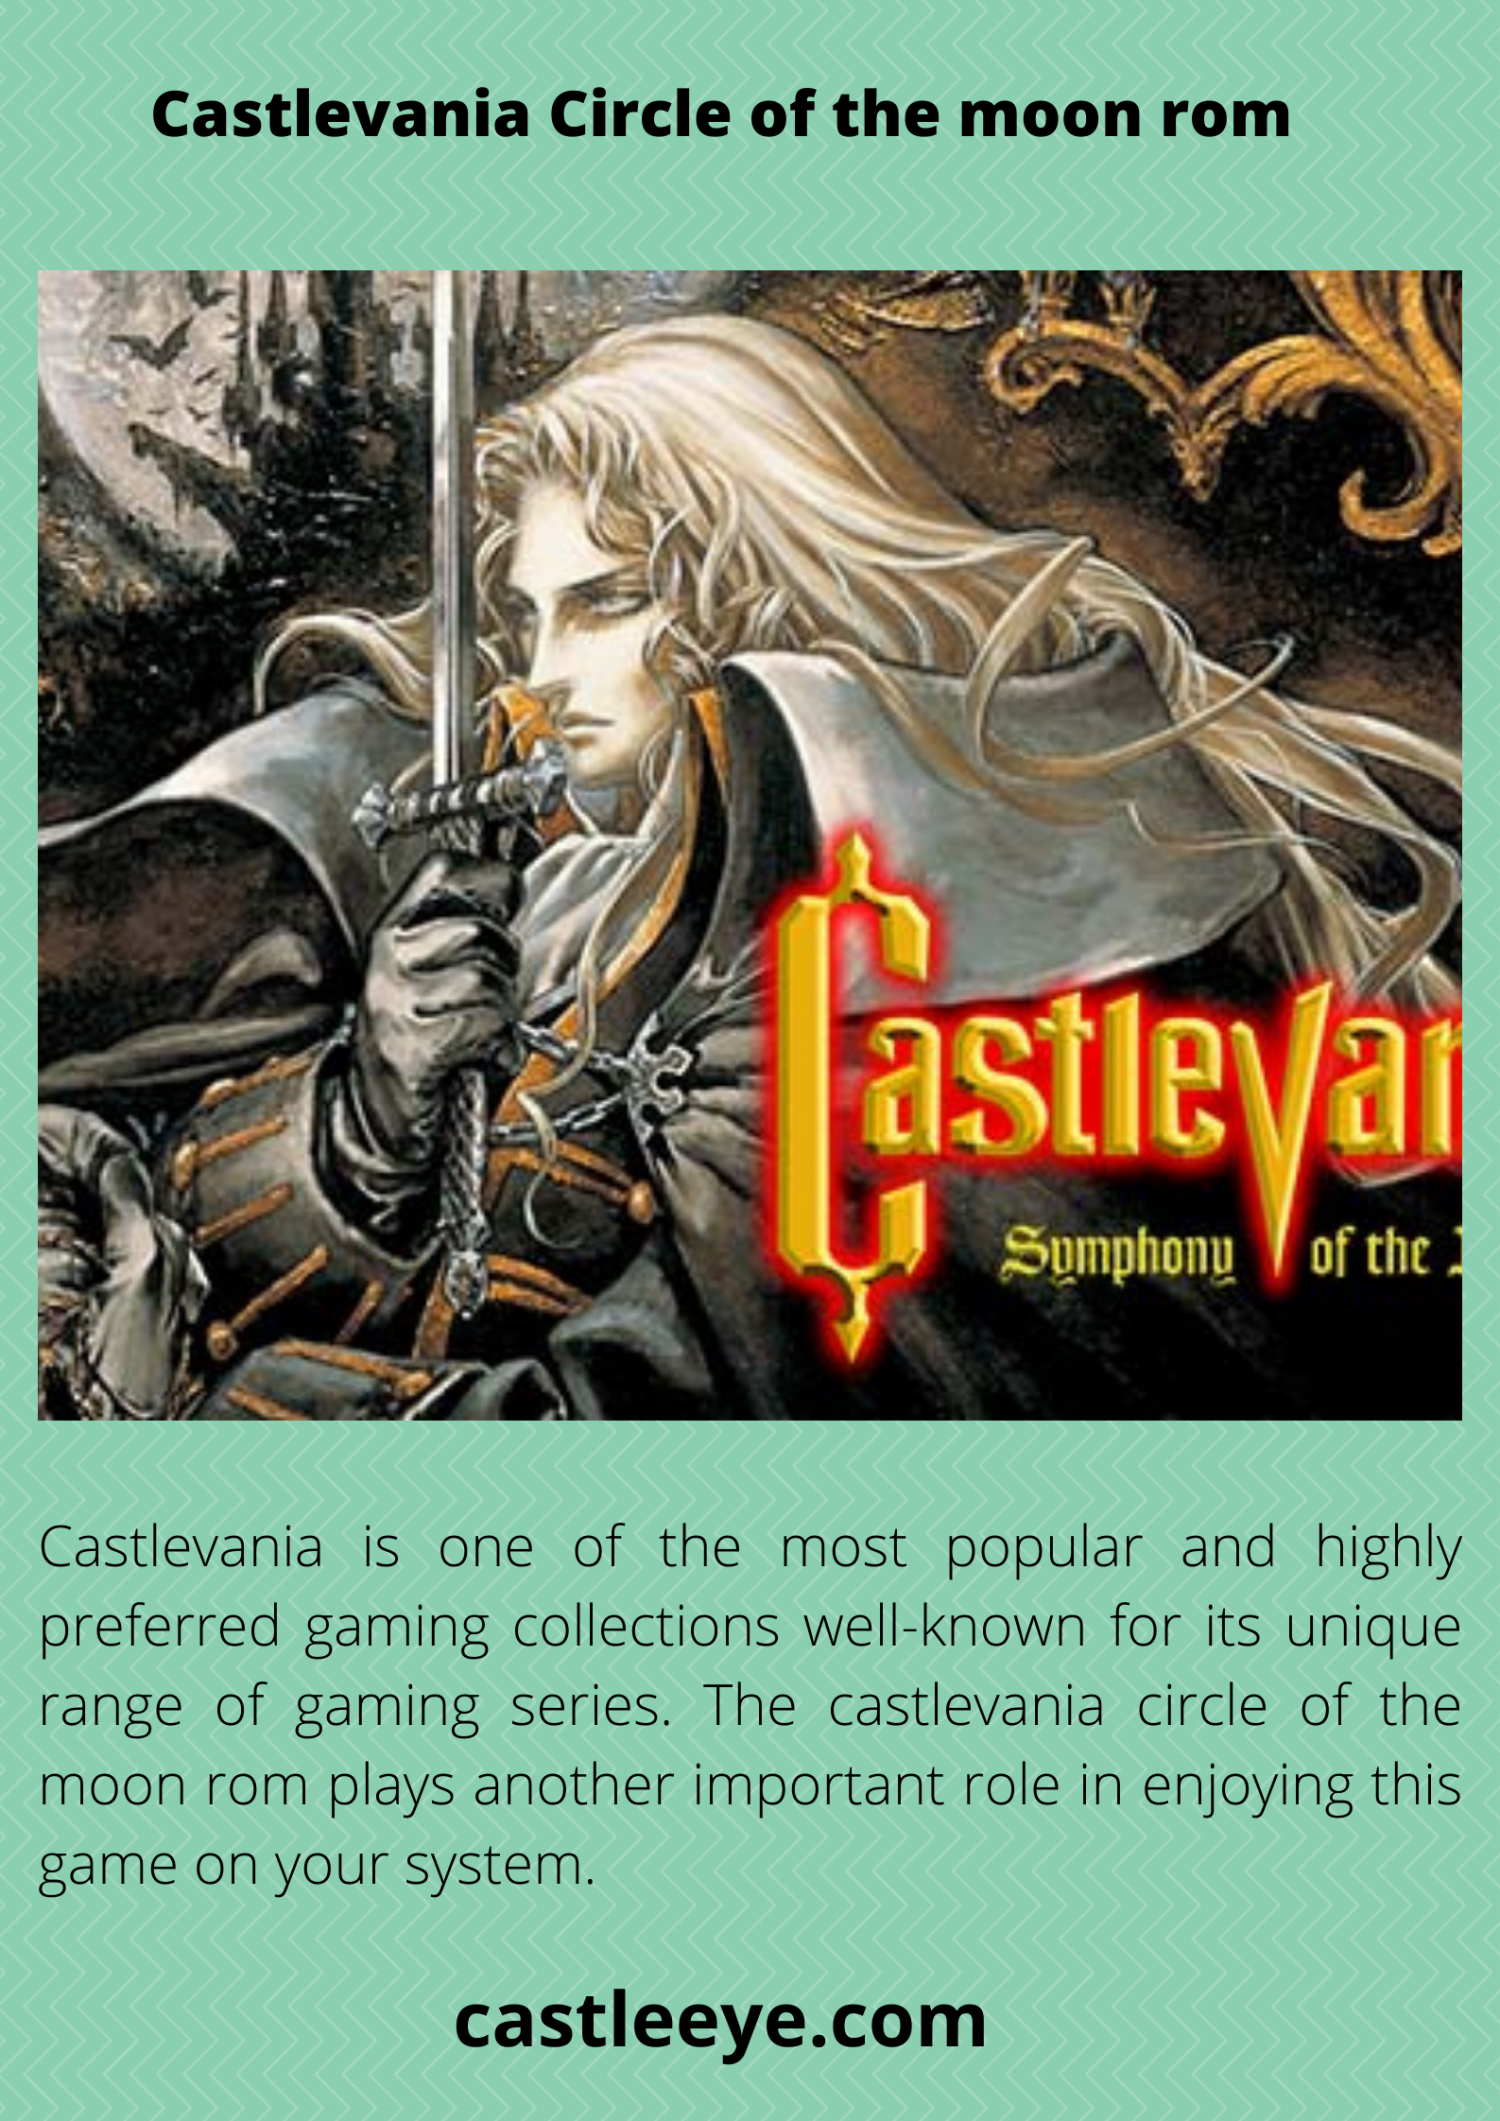 Castlevania circle of the moon rom Infographic